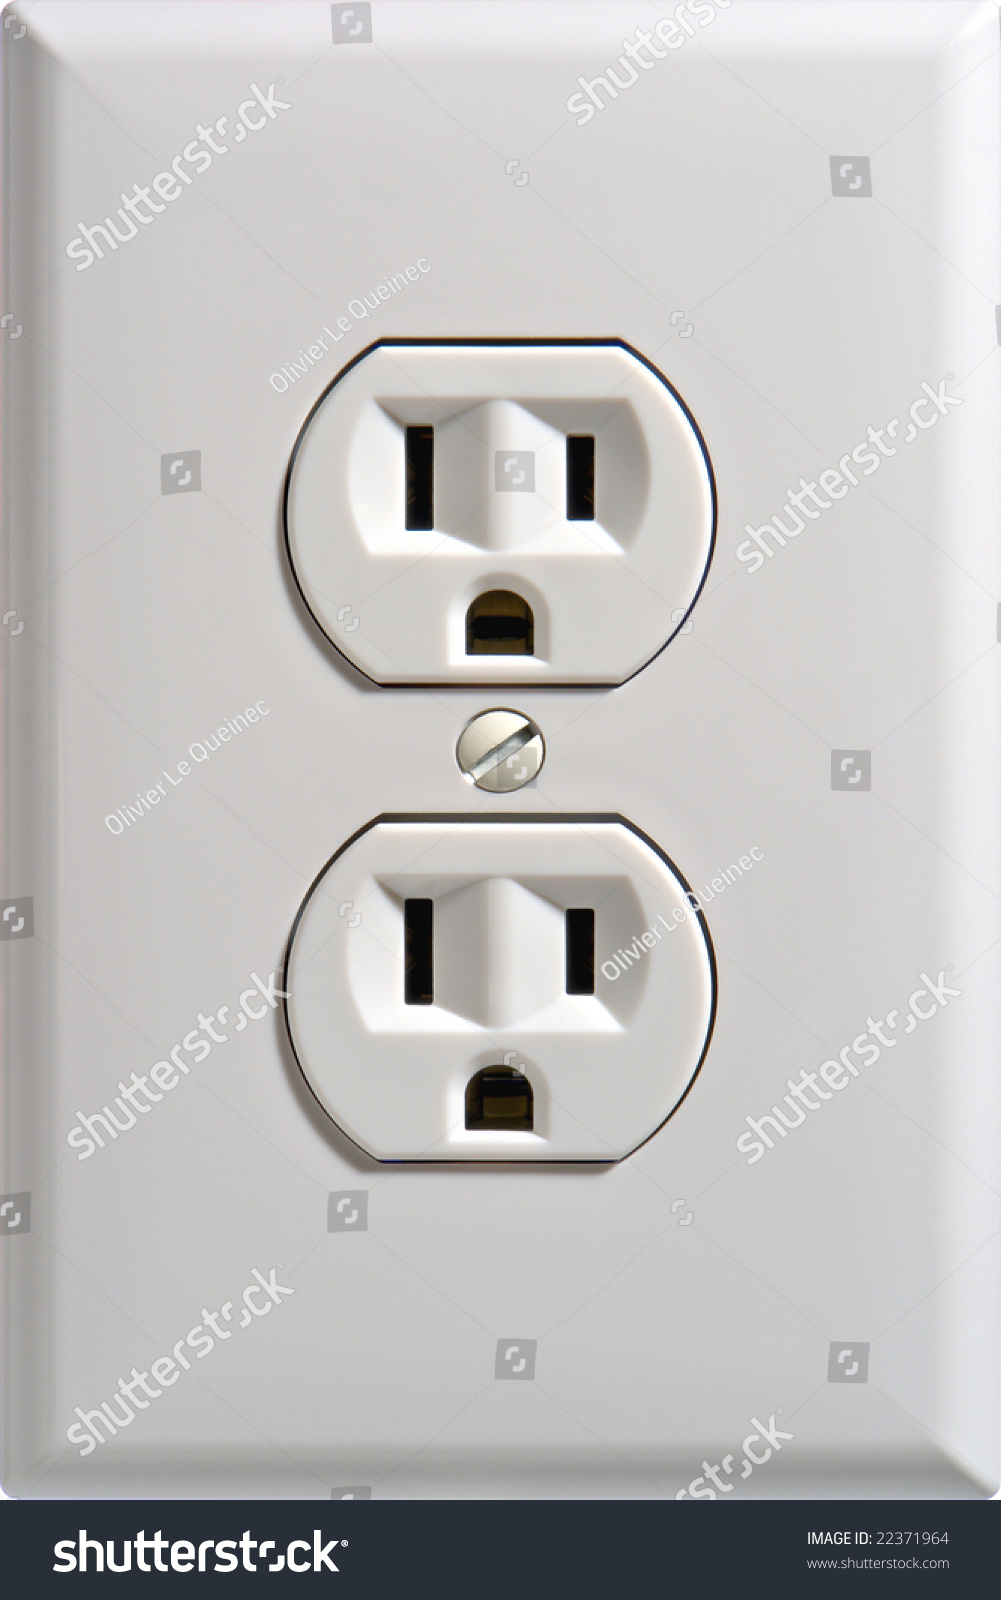 North American Standard 110 Volt Electric Stock Photo (Edit Now ...